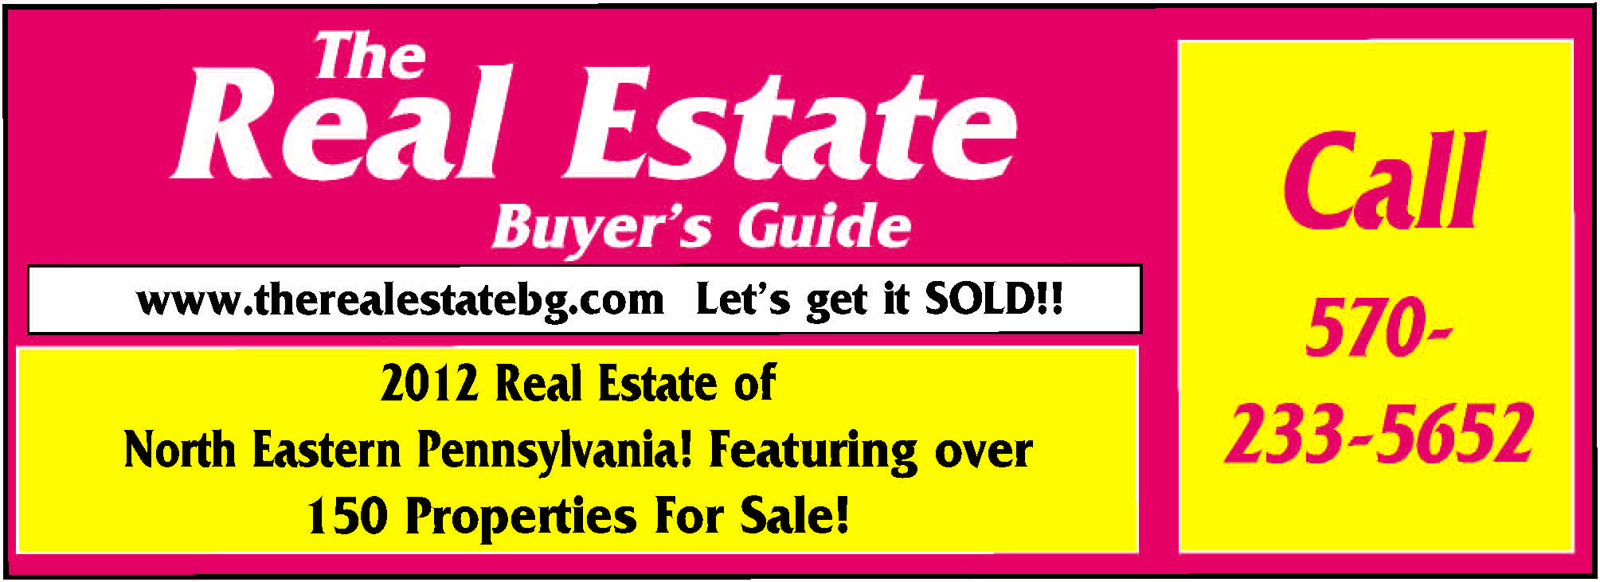 USAHomeSearch Online Real Estate Magazines